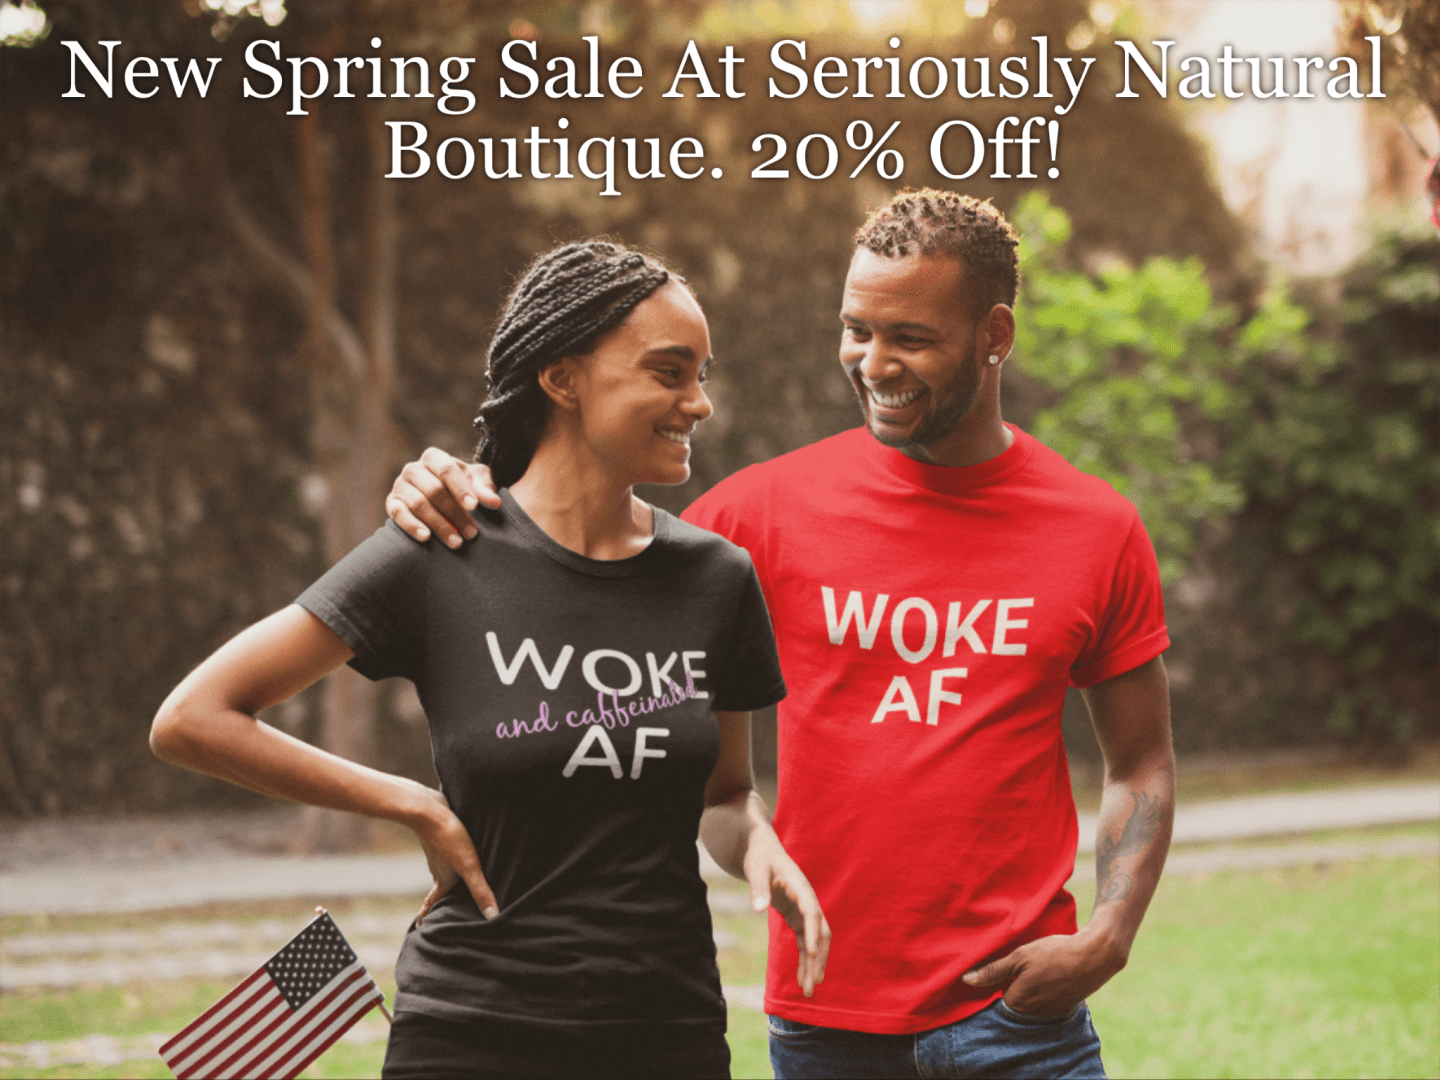 Time for the perfect spring sale! Get 20% off everything at Seriousy Natural Boutique. Check out the cutetest tees, totes and mugs that every natural needs!